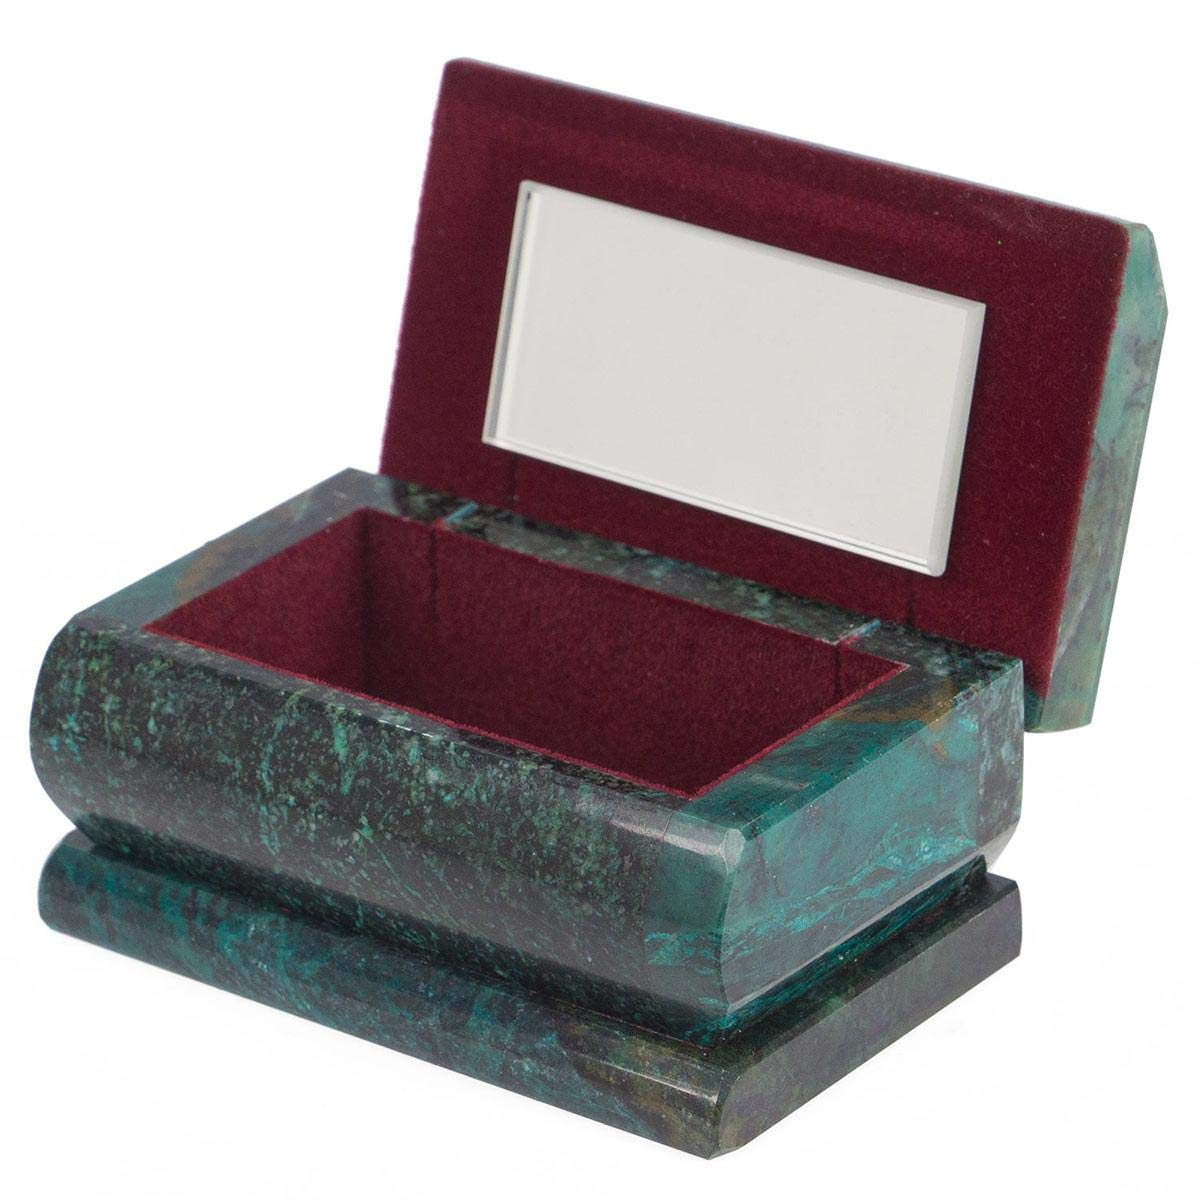 Casket from Natural Stone 9167 Ural Souvenirs